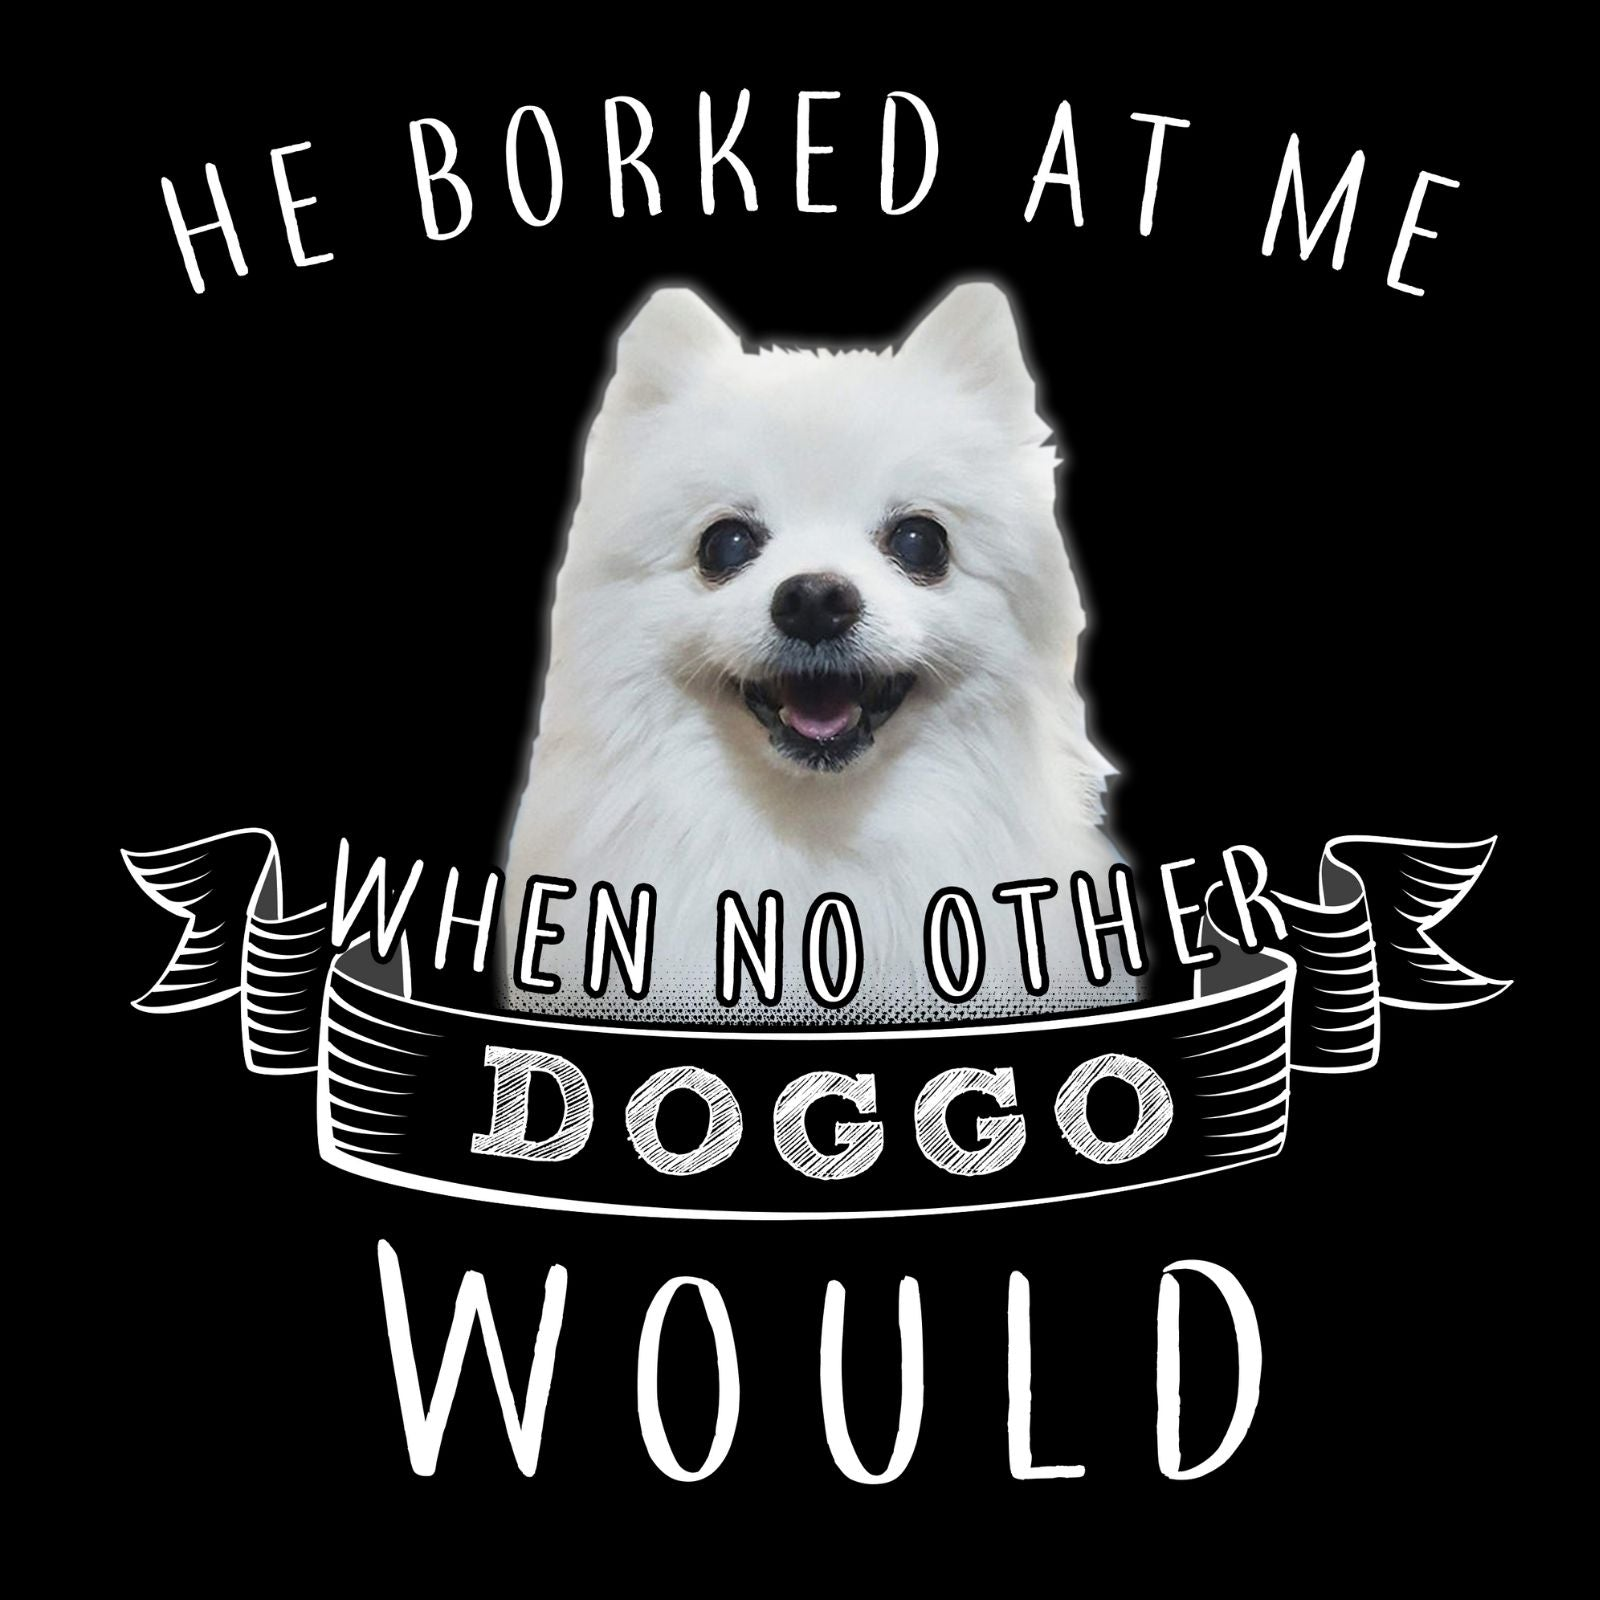 He Borked At Me When No Other Doggo Would - Bastard Graphics